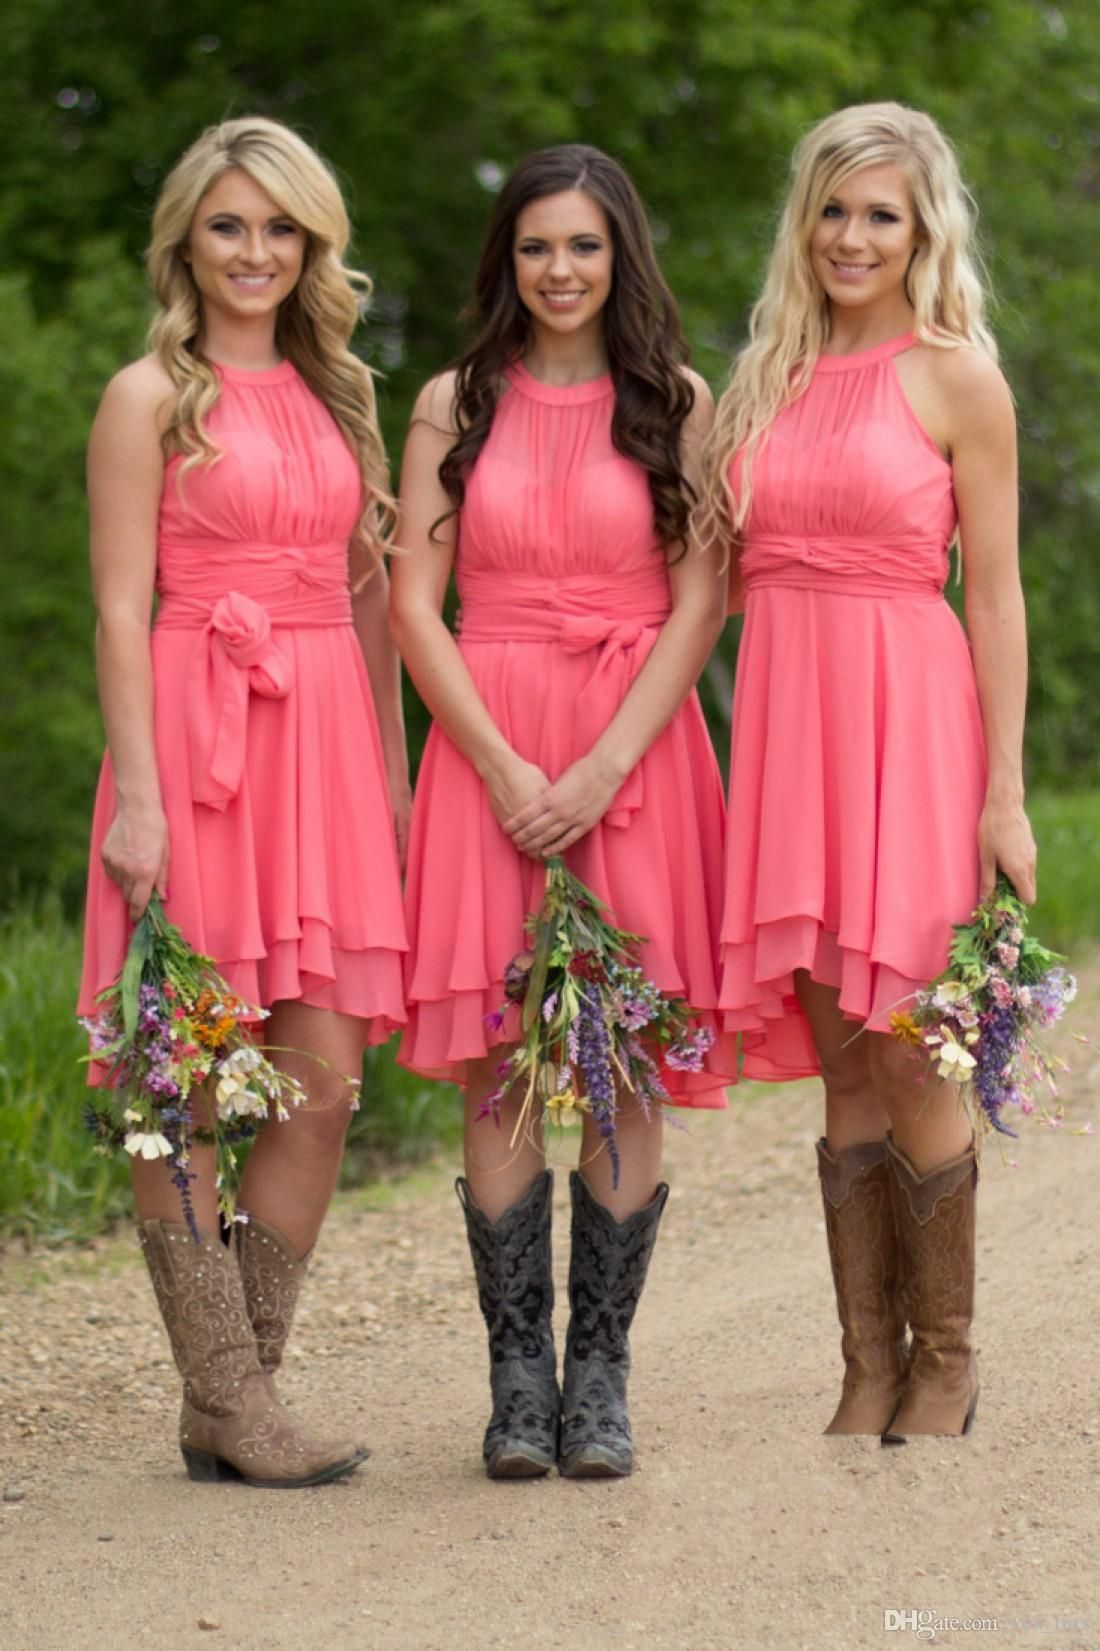 Cheap 2018 cheap country coral bridesmaid dresses jewel neck cheap 2018 cheap country coral bridesmaid dresses jewel neck chiffon knee length wedding guest wear party dresses maid of honor gowns under 100 as low as ombrellifo Gallery